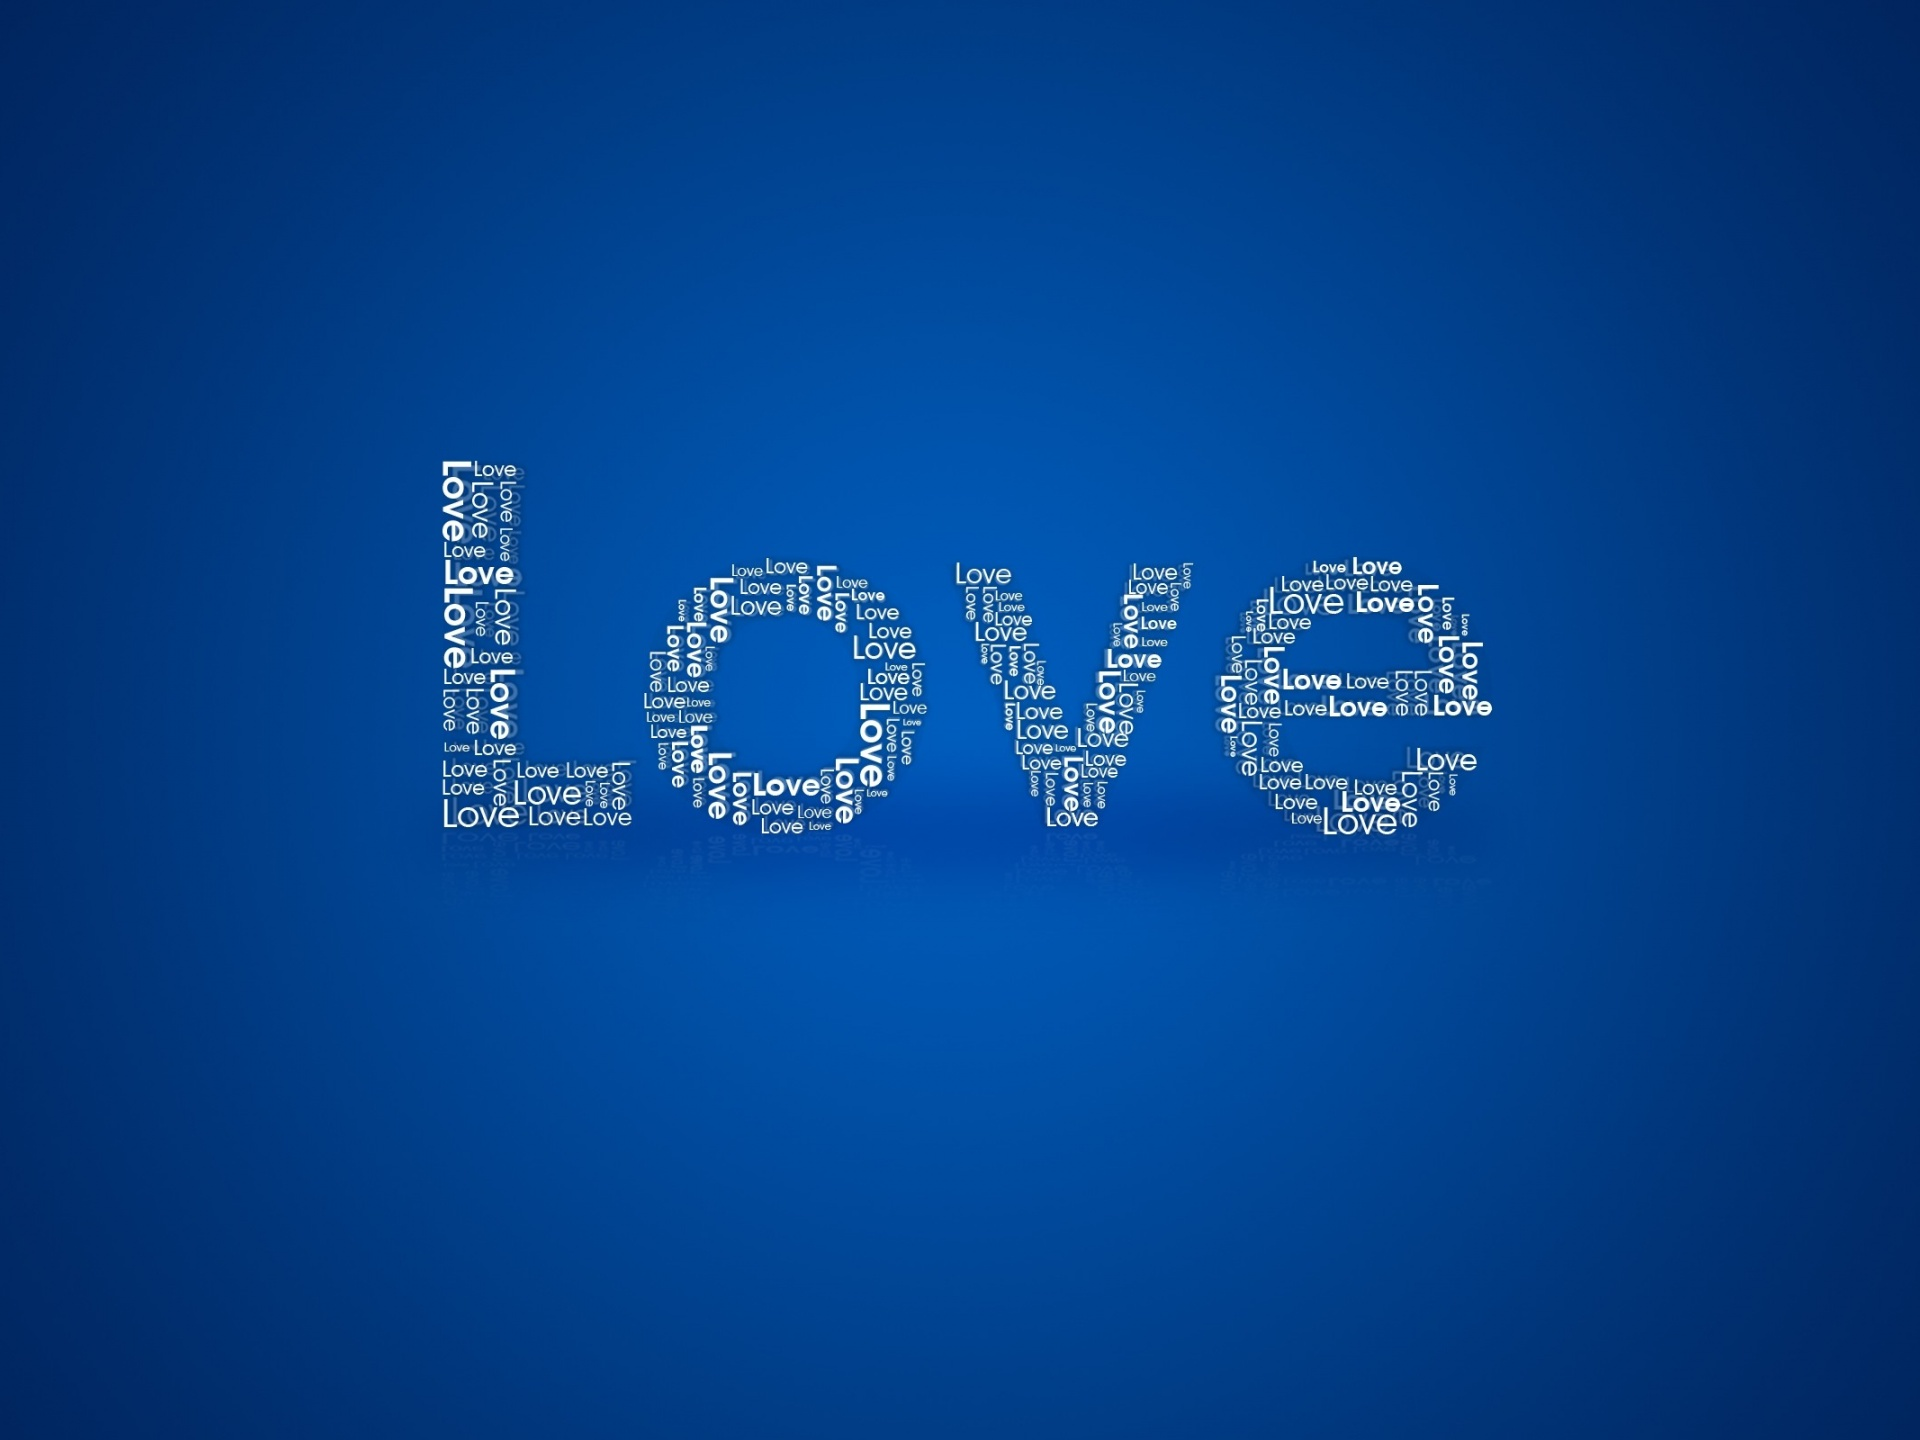 click to free download the wallpaper--Lovely Wallpaper, a Full Eye of Love, Apparently the Keyword, Blue Background